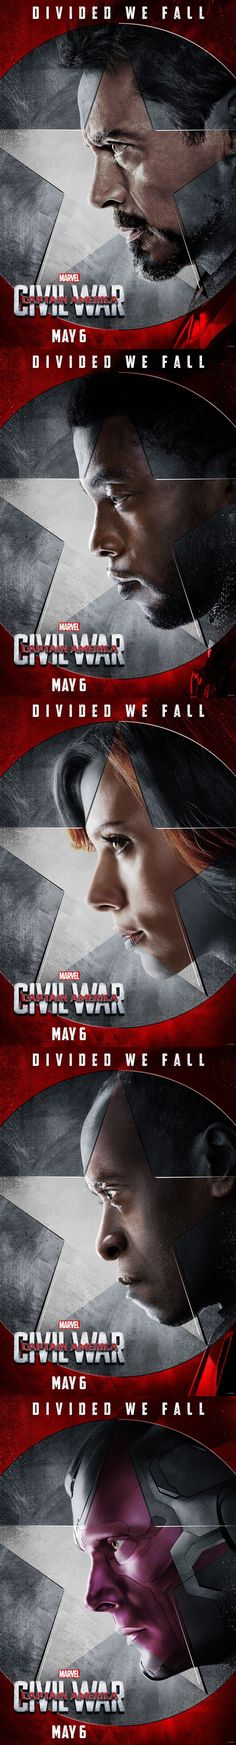 Captain America: Civil War Character Posters | TEAM IRON MAN